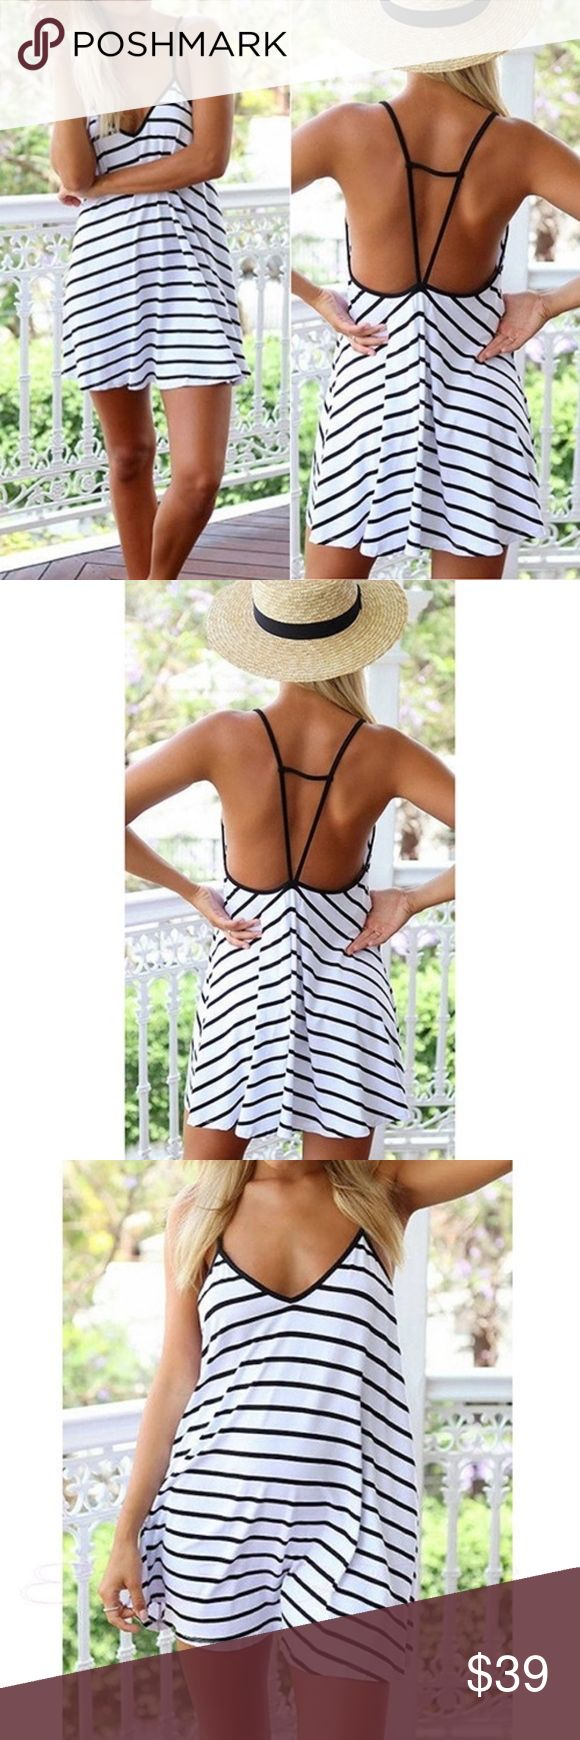 Cool Stripes loose V-neck dress/ Cover up This dress can be used as a great summer dress for fun in the sun or as a cover up on the beach! I have one for my summer wardrobe and love it. Great new addition to my boutique line that I just started past week. Hope you all enjoy this item. Happy Poshing! Boutique Dresses